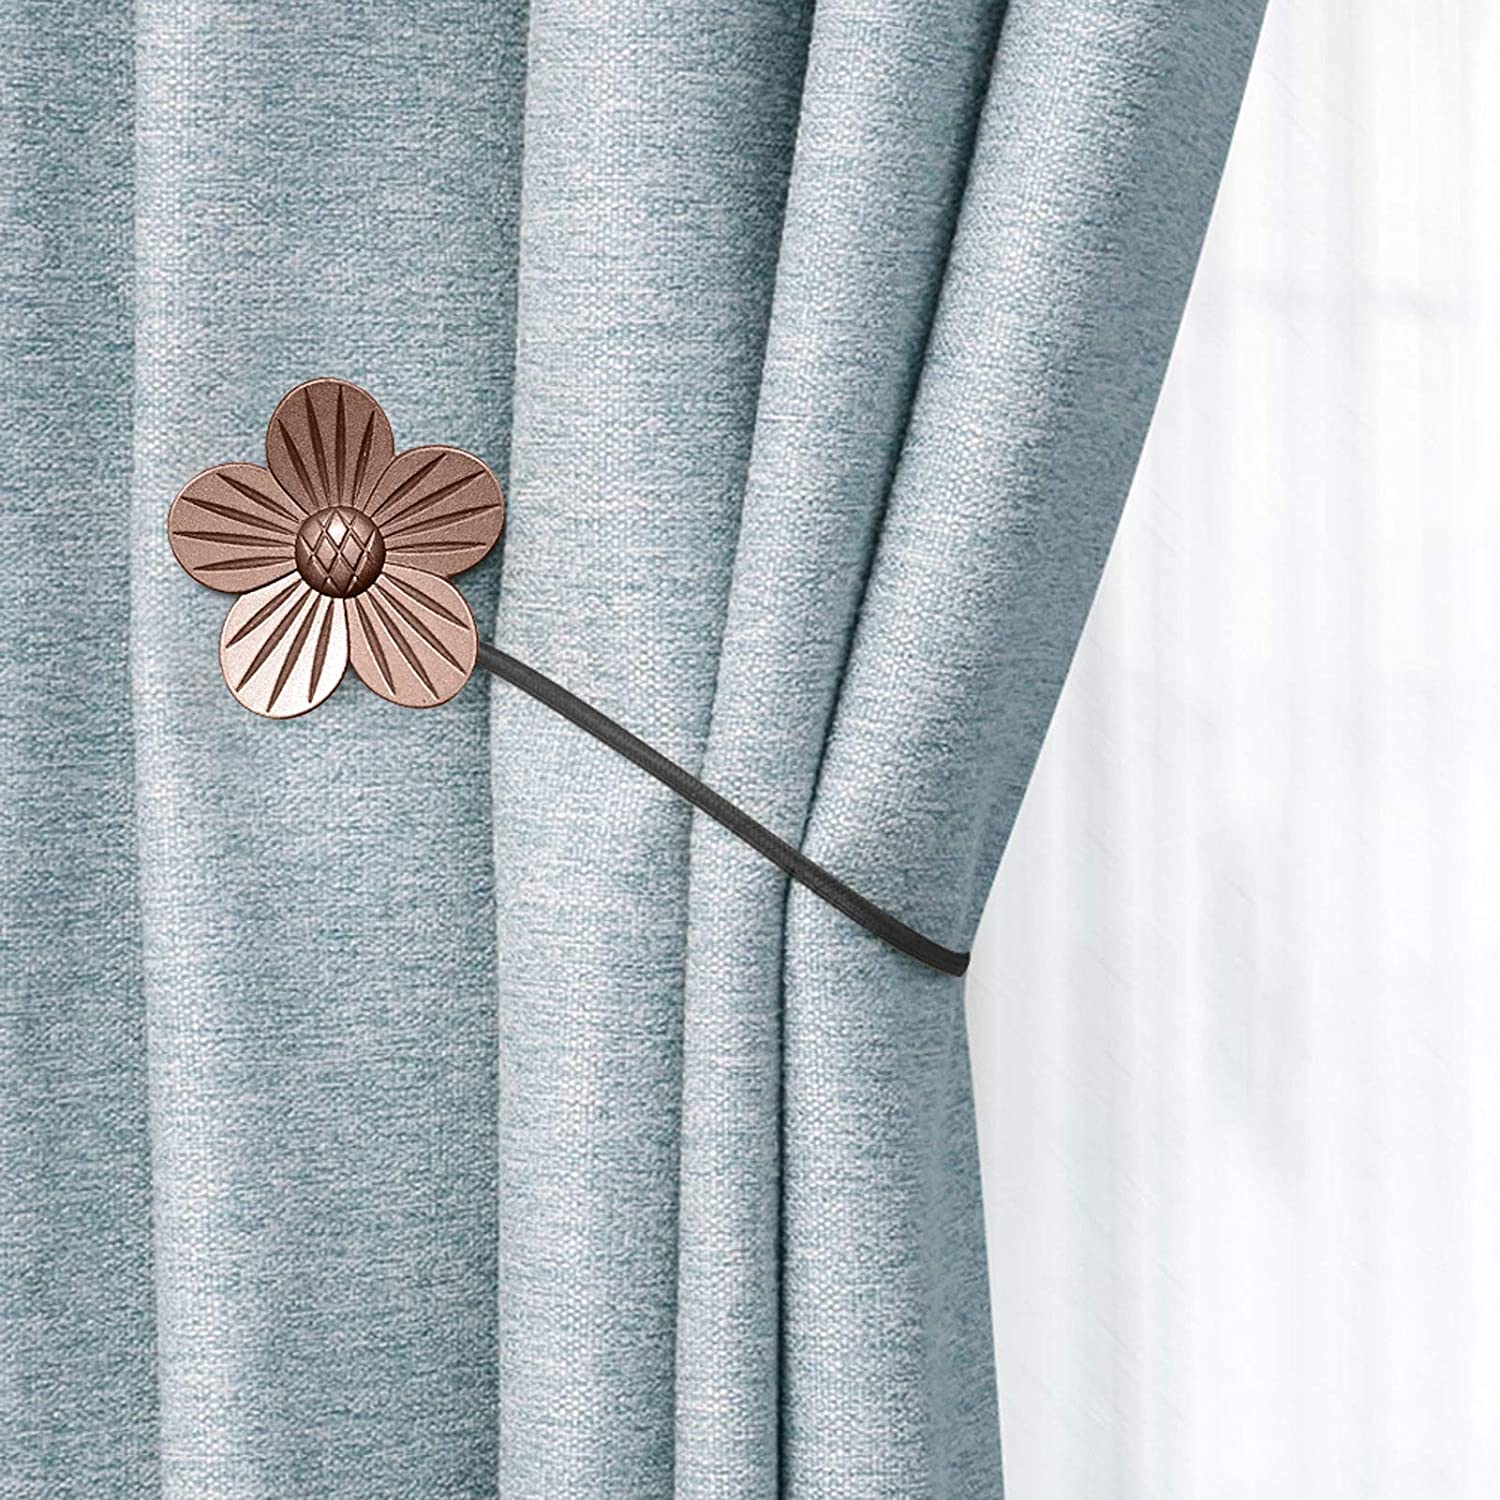 RISHNEG Magnetic Curtain Tiebacks, 4 Pack Resin Flower Vintage Curtain Holdbacks, Decorative Rope Curtain Tieback Window Drape Holdbacks Holders for Home, Office (Red Copper)